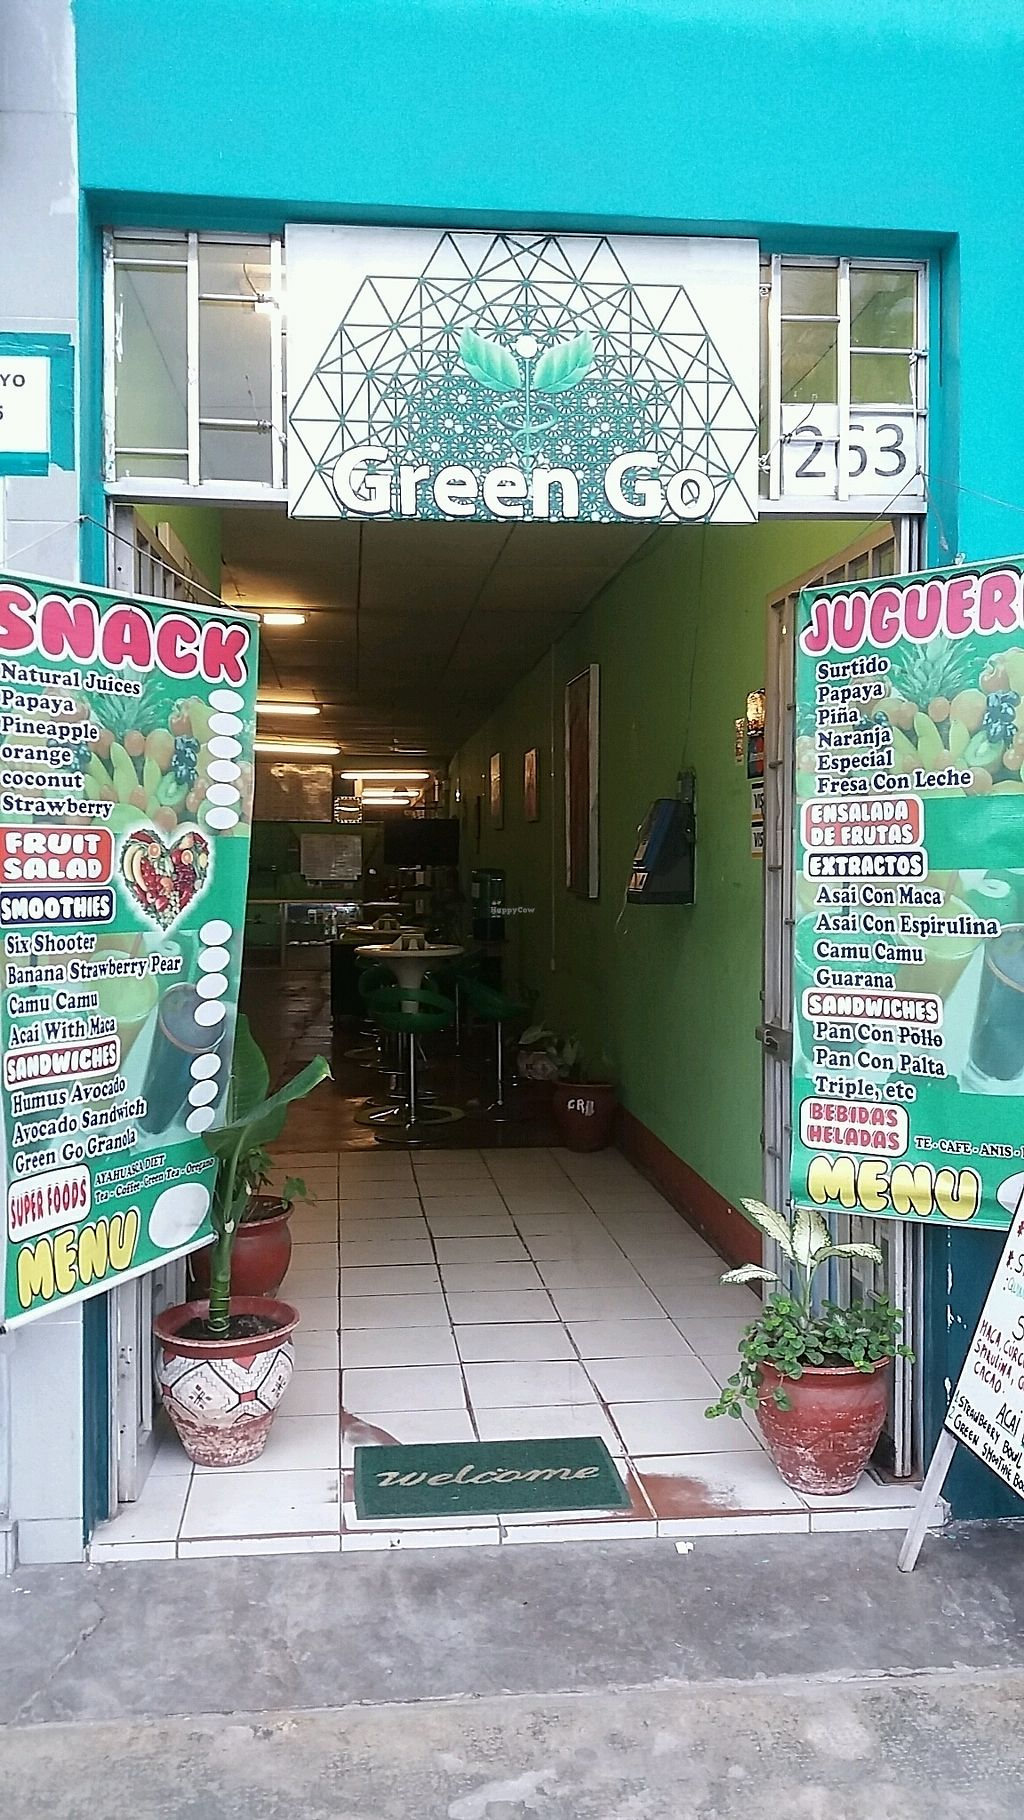 """Photo of Green Go  by <a href=""""/members/profile/CiroManuelMor%C3%B3nP%C3%A9r"""">CiroManuelMorónPér</a> <br/>Healthy Store <br/> February 5, 2018  - <a href='/contact/abuse/image/89922/355352'>Report</a>"""